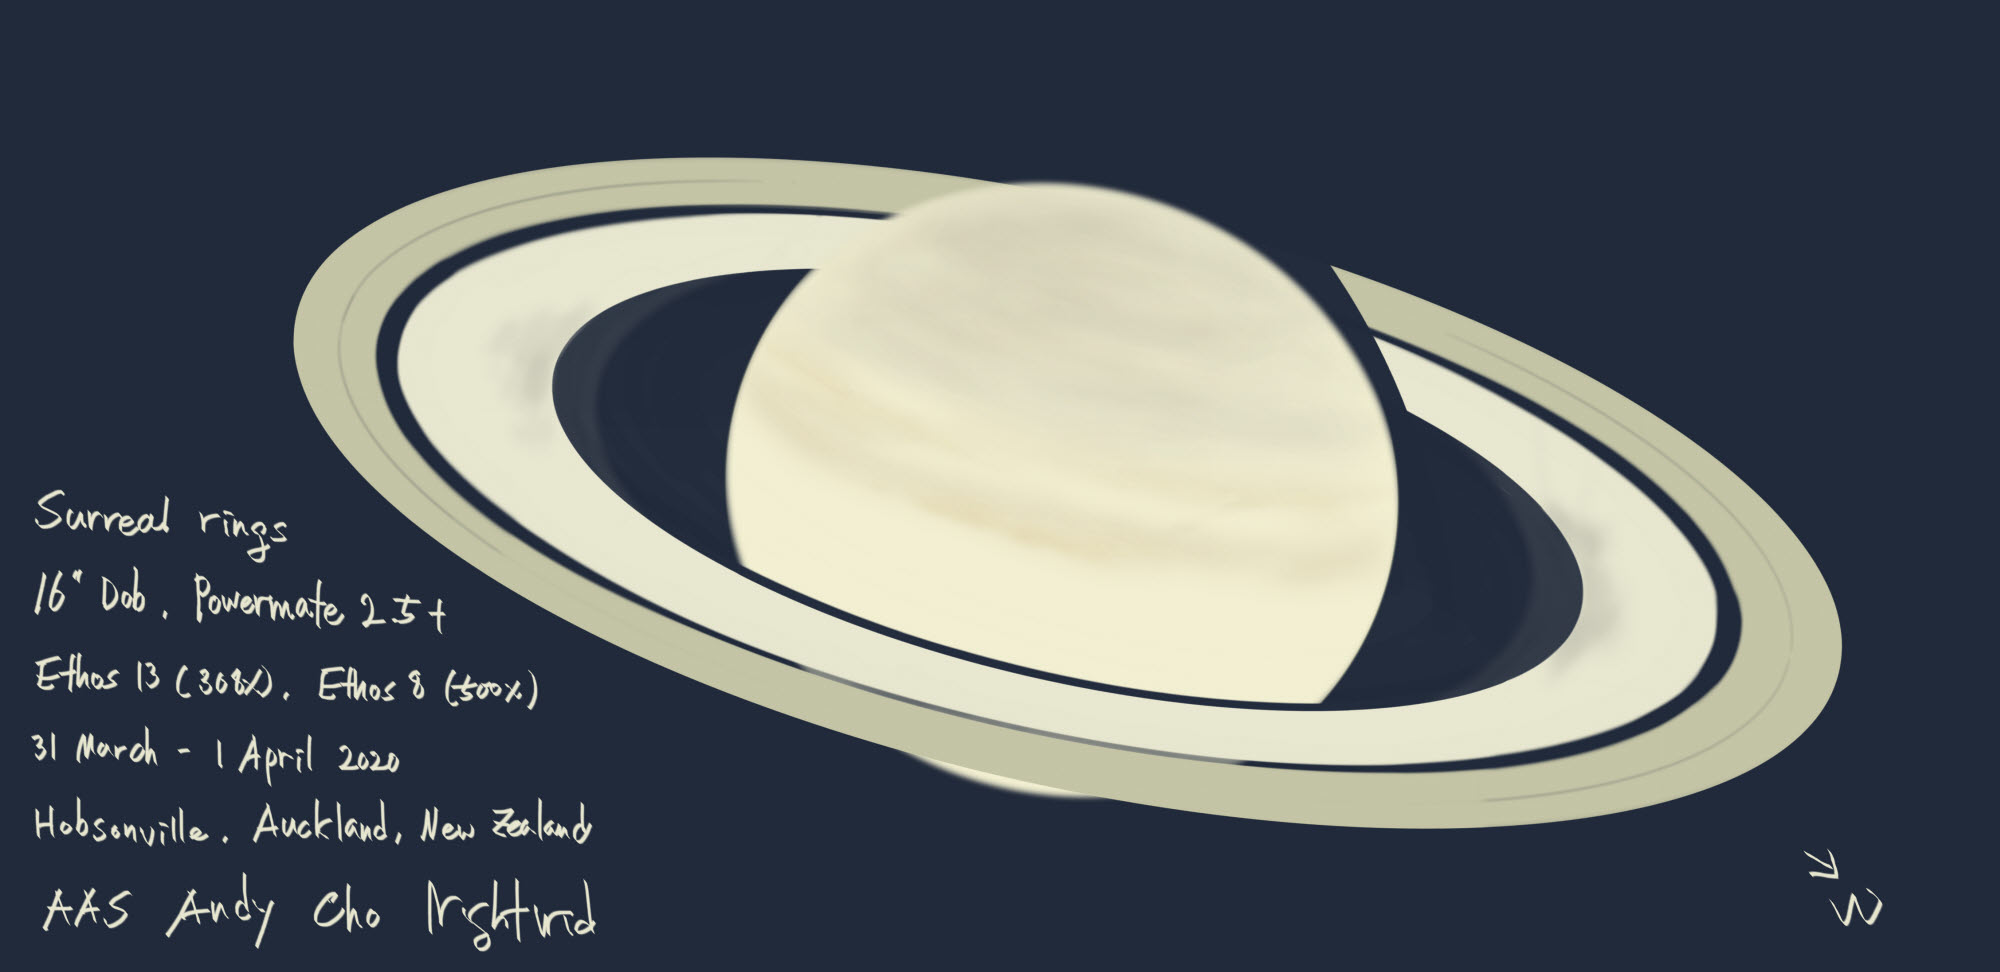 2000_Surreal rings of Saturn 1 April 2020.jpg